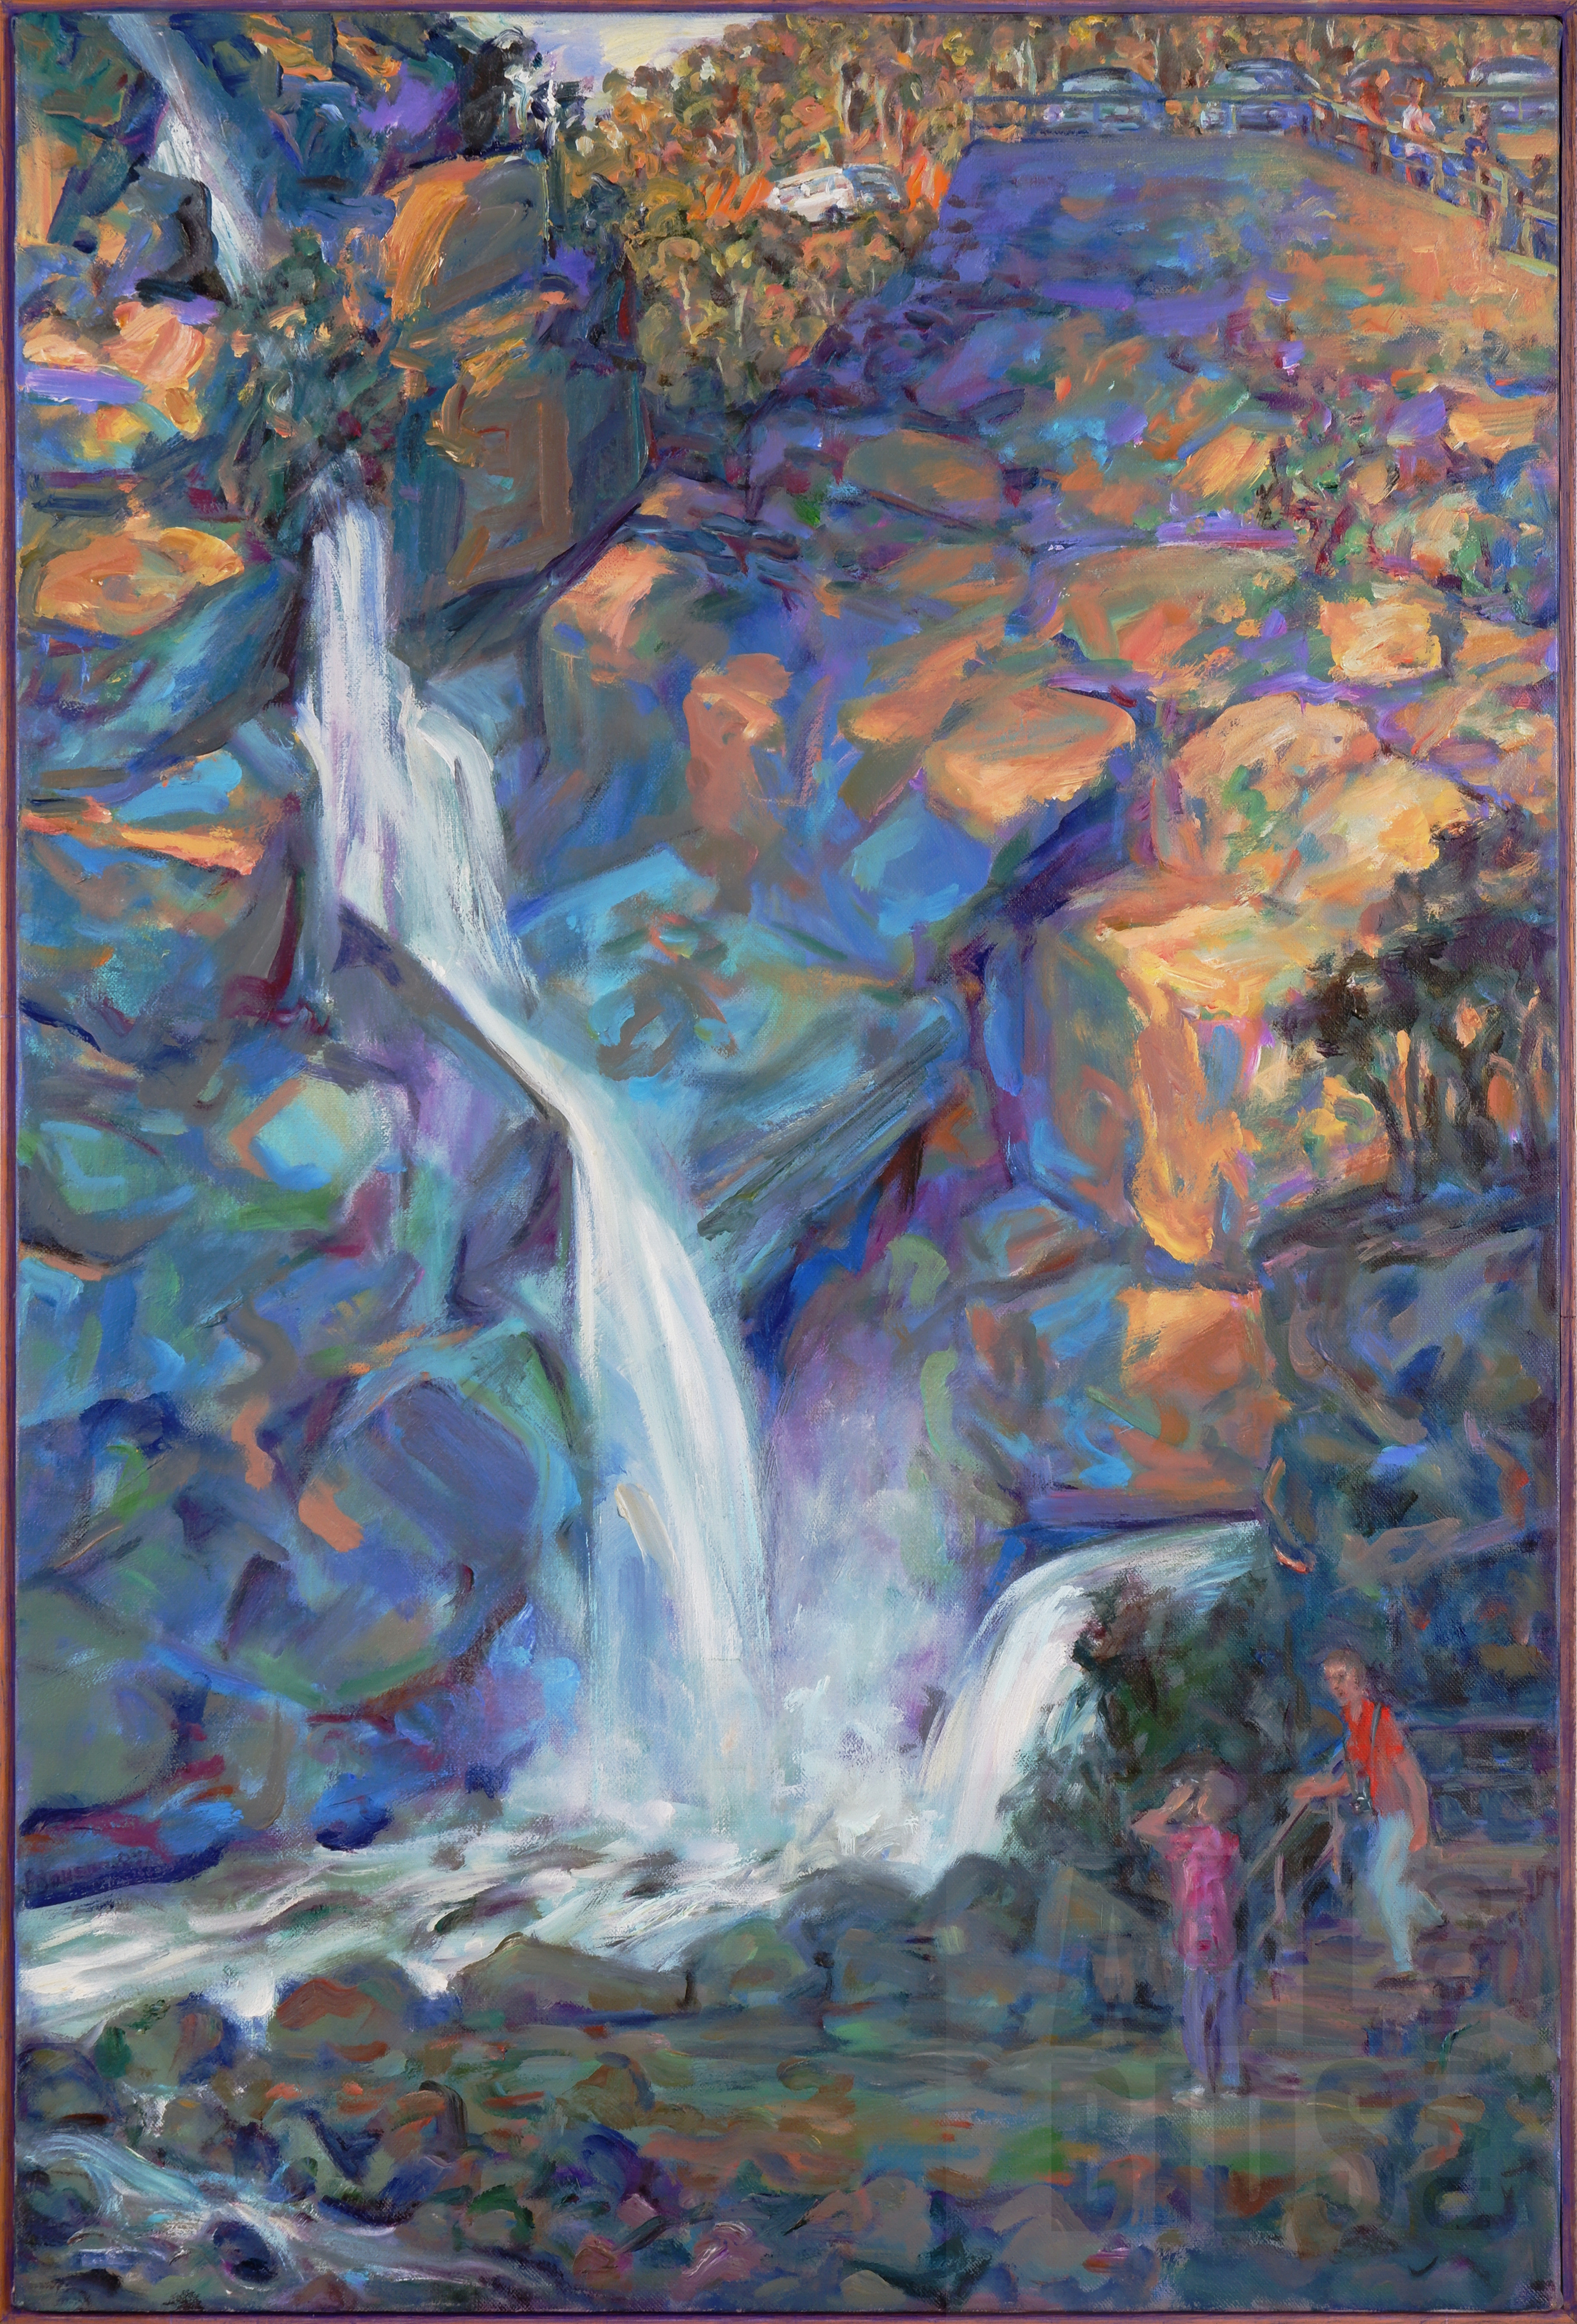 'Janet Dawson (born 1935), Untitled (Waterfall and Lookout), Oil on Canvas, 76 x 51 cm'